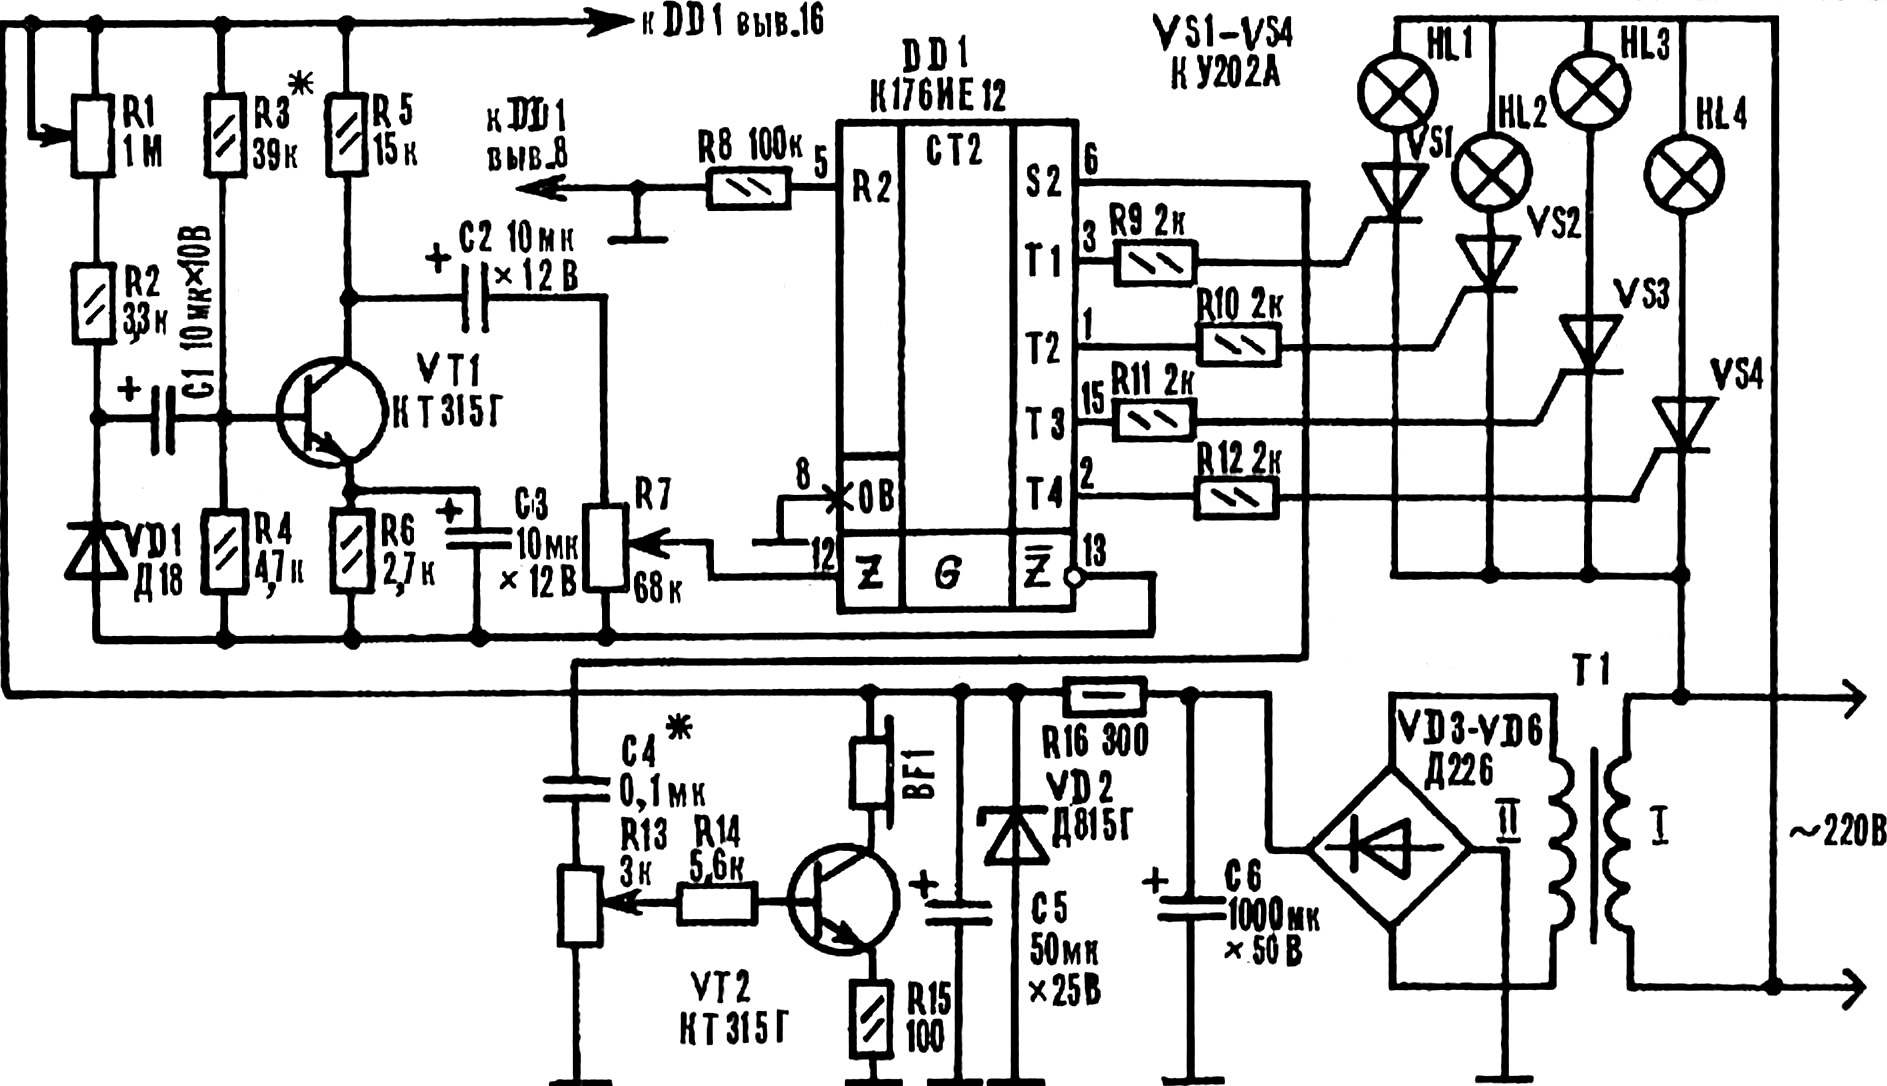 Schematic diagram of the electronic simulator.